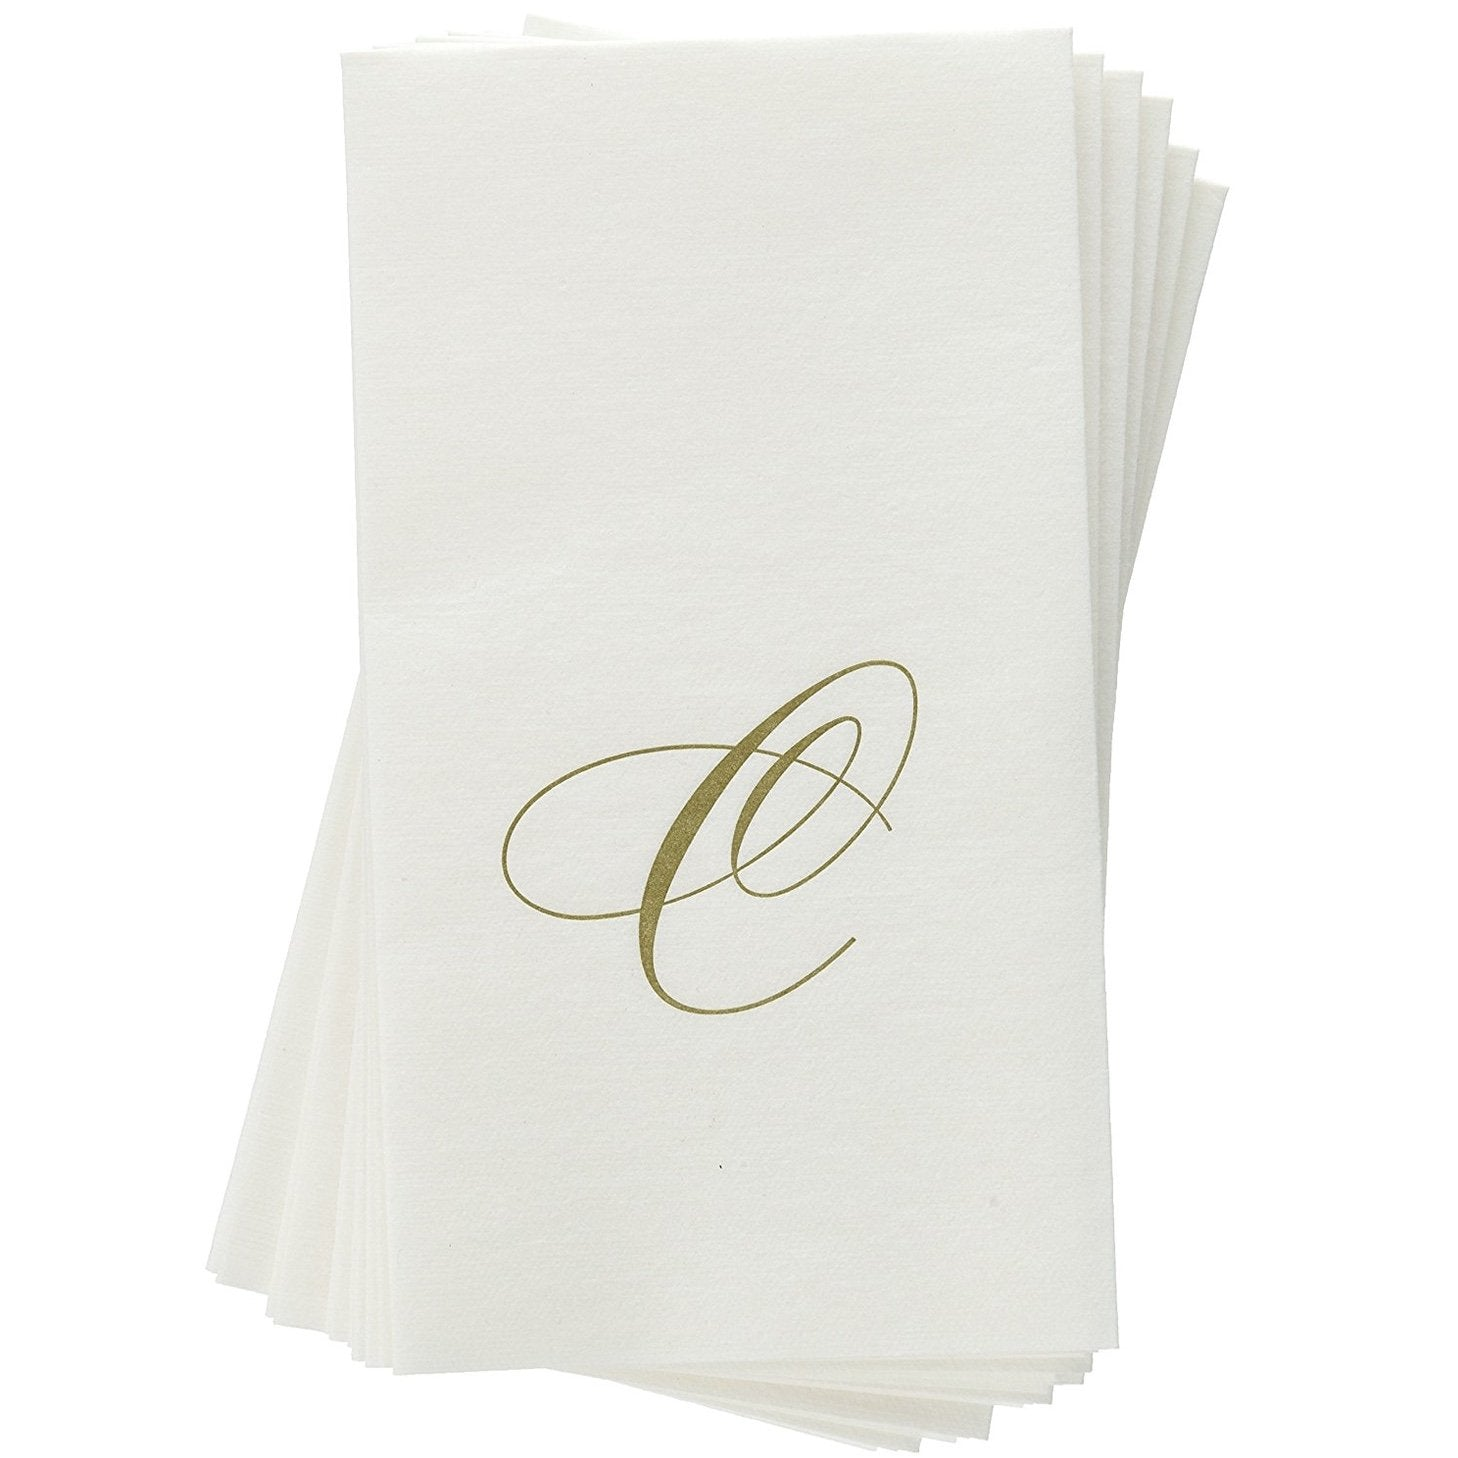 Monogram Paper Guest Towels